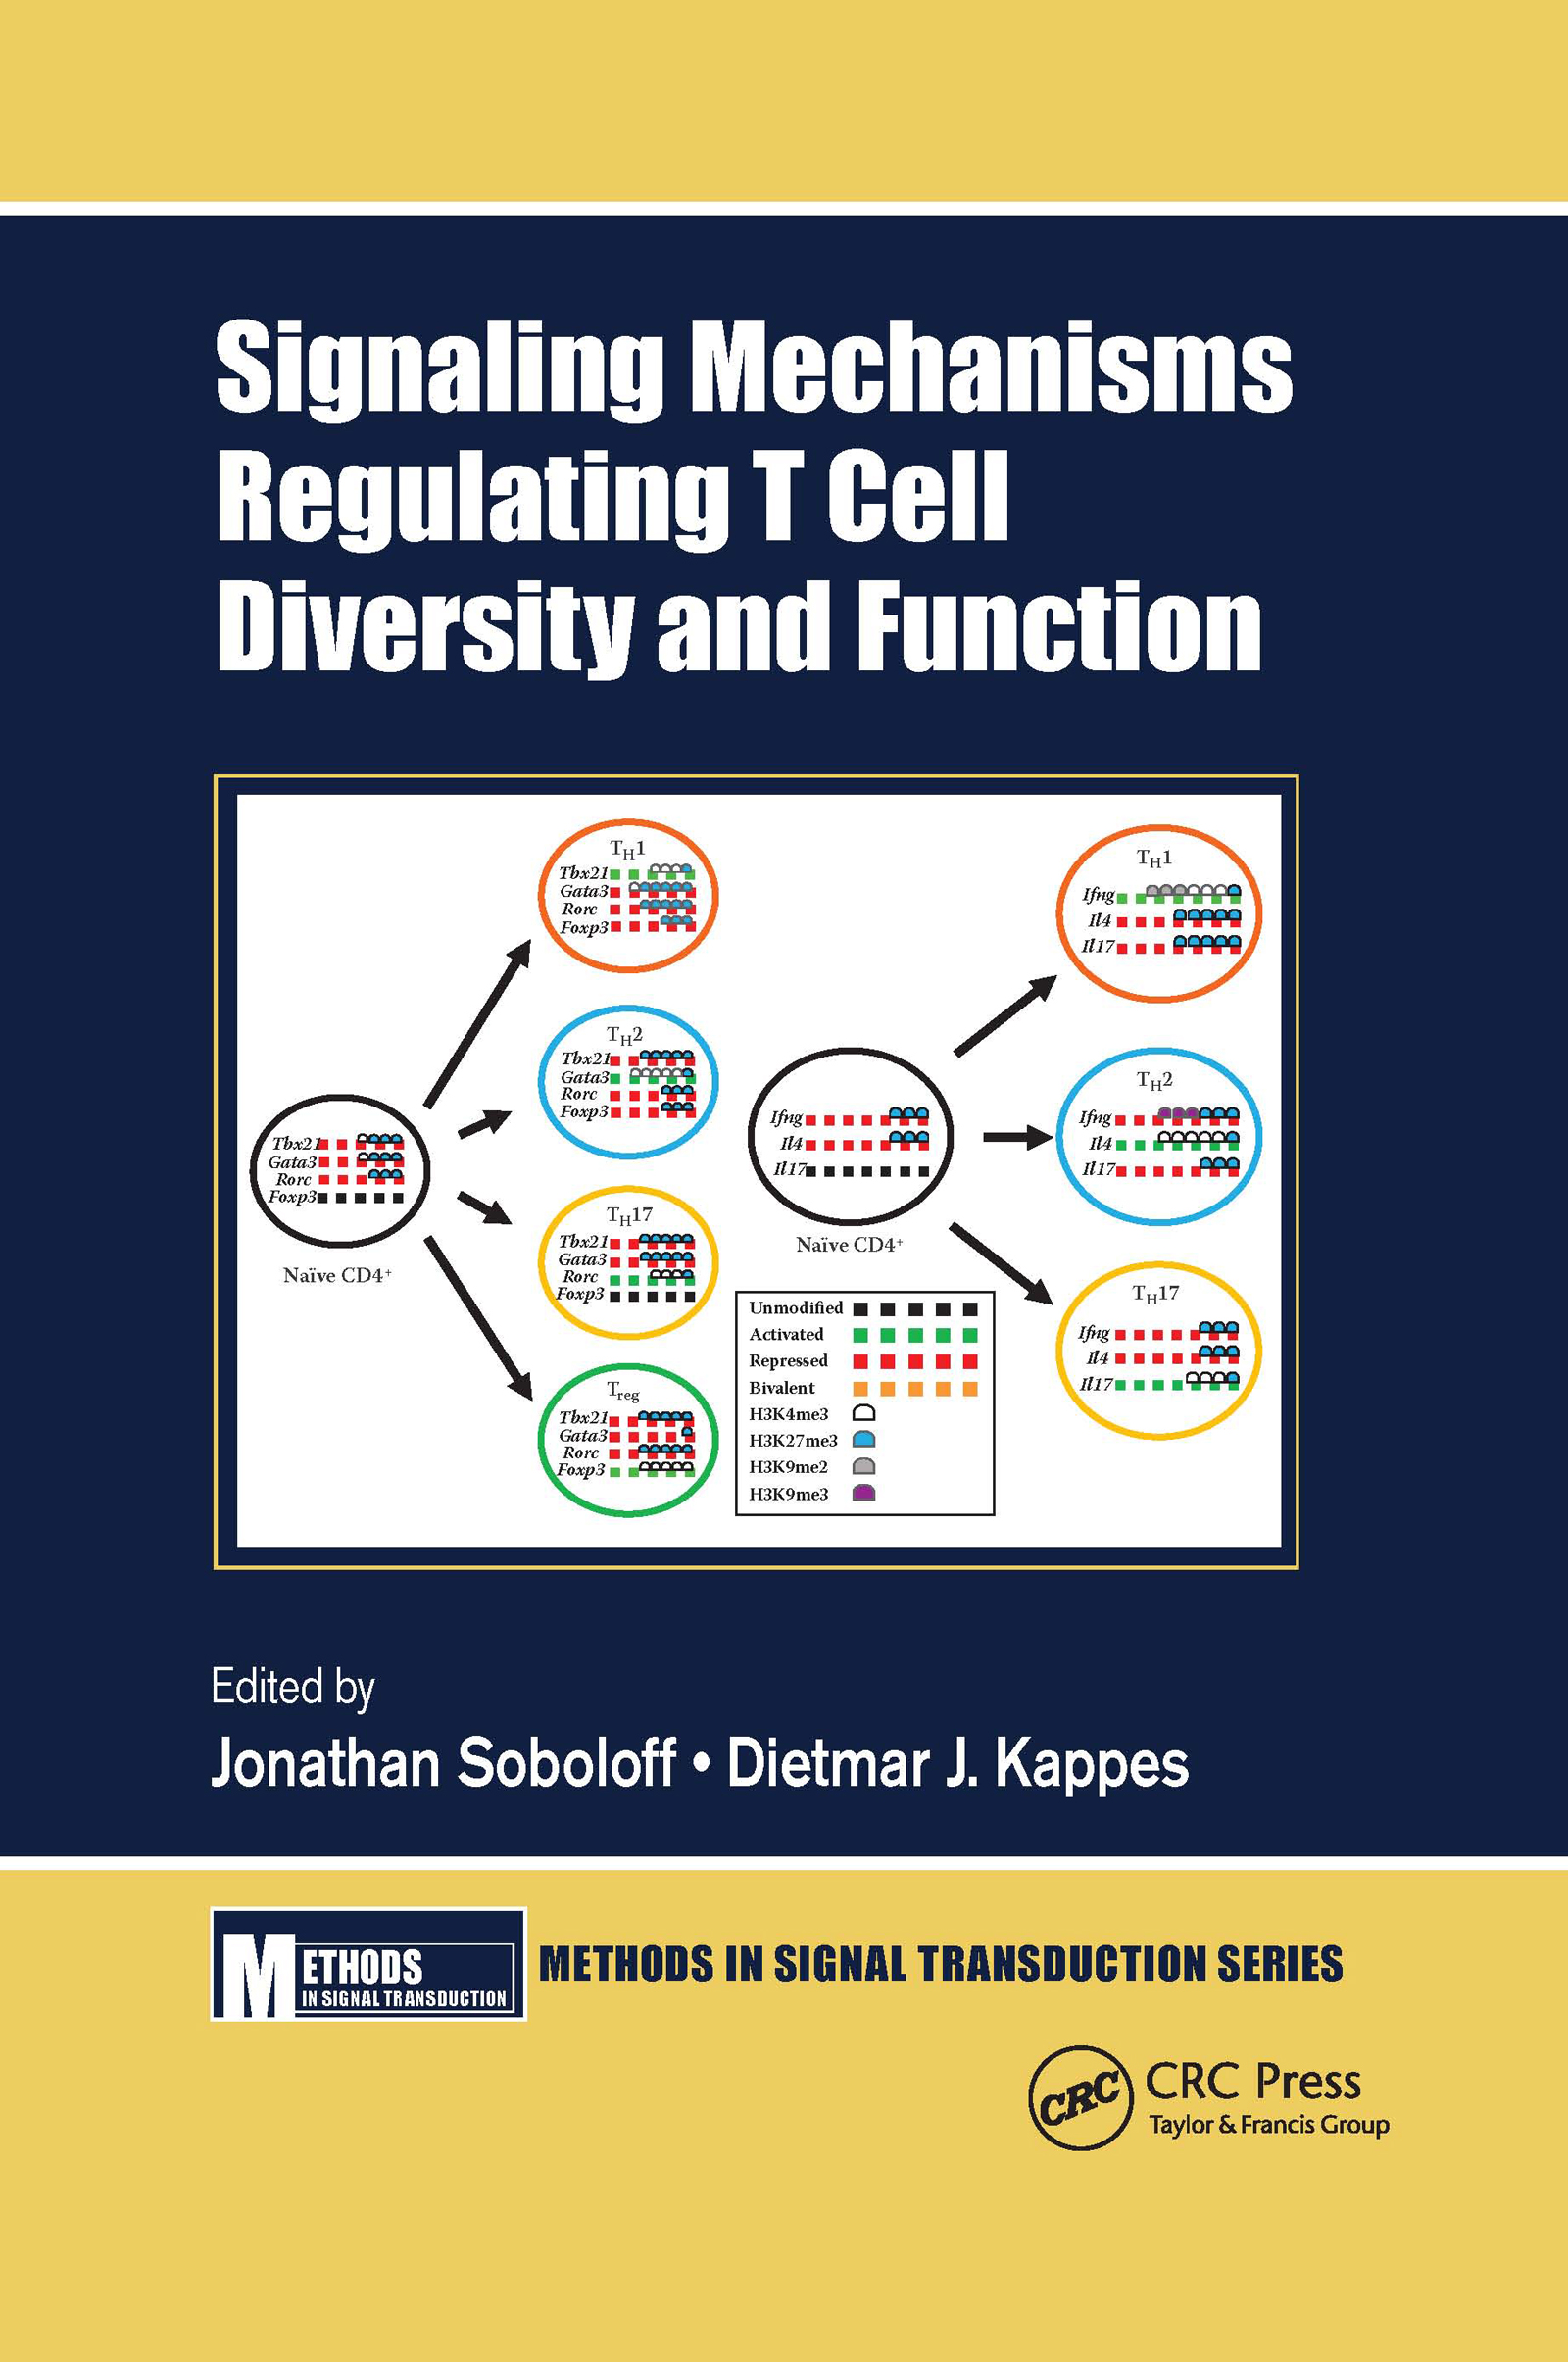 Signaling Mechanisms Regulating T Cell Diversity and Function